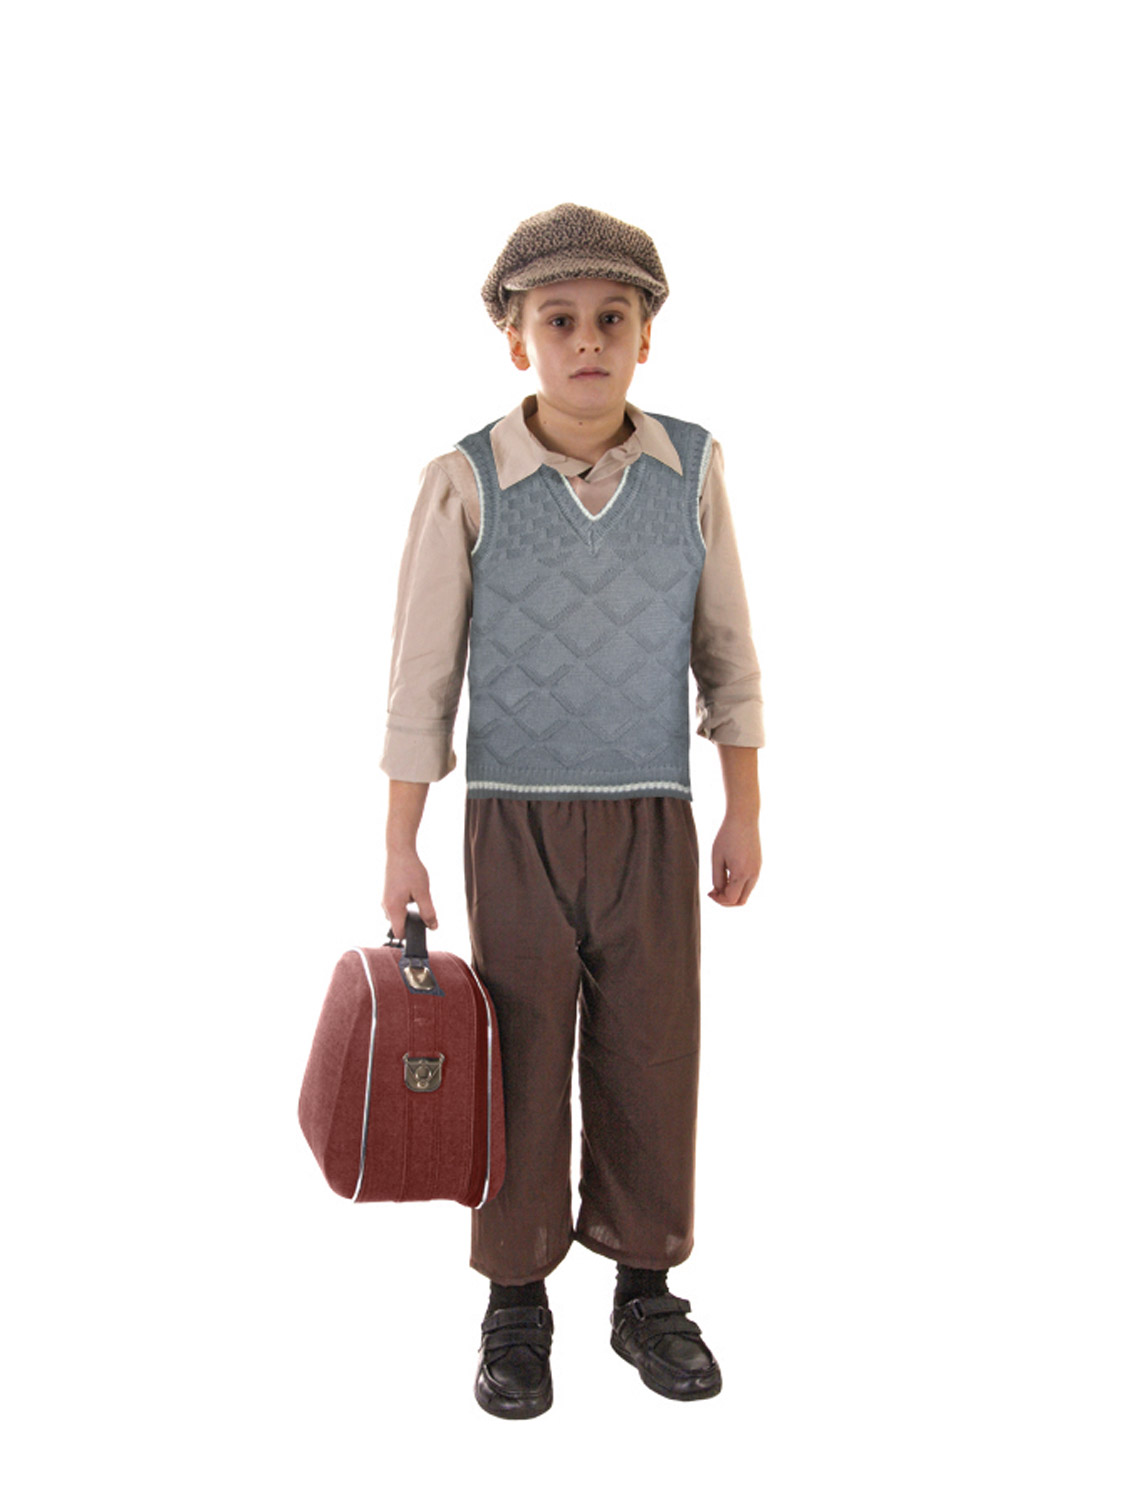 Evacuee Boy Fancy Dress Ww2 1940s Child Kids Boys World War 2 Ve Day Costume Ebay